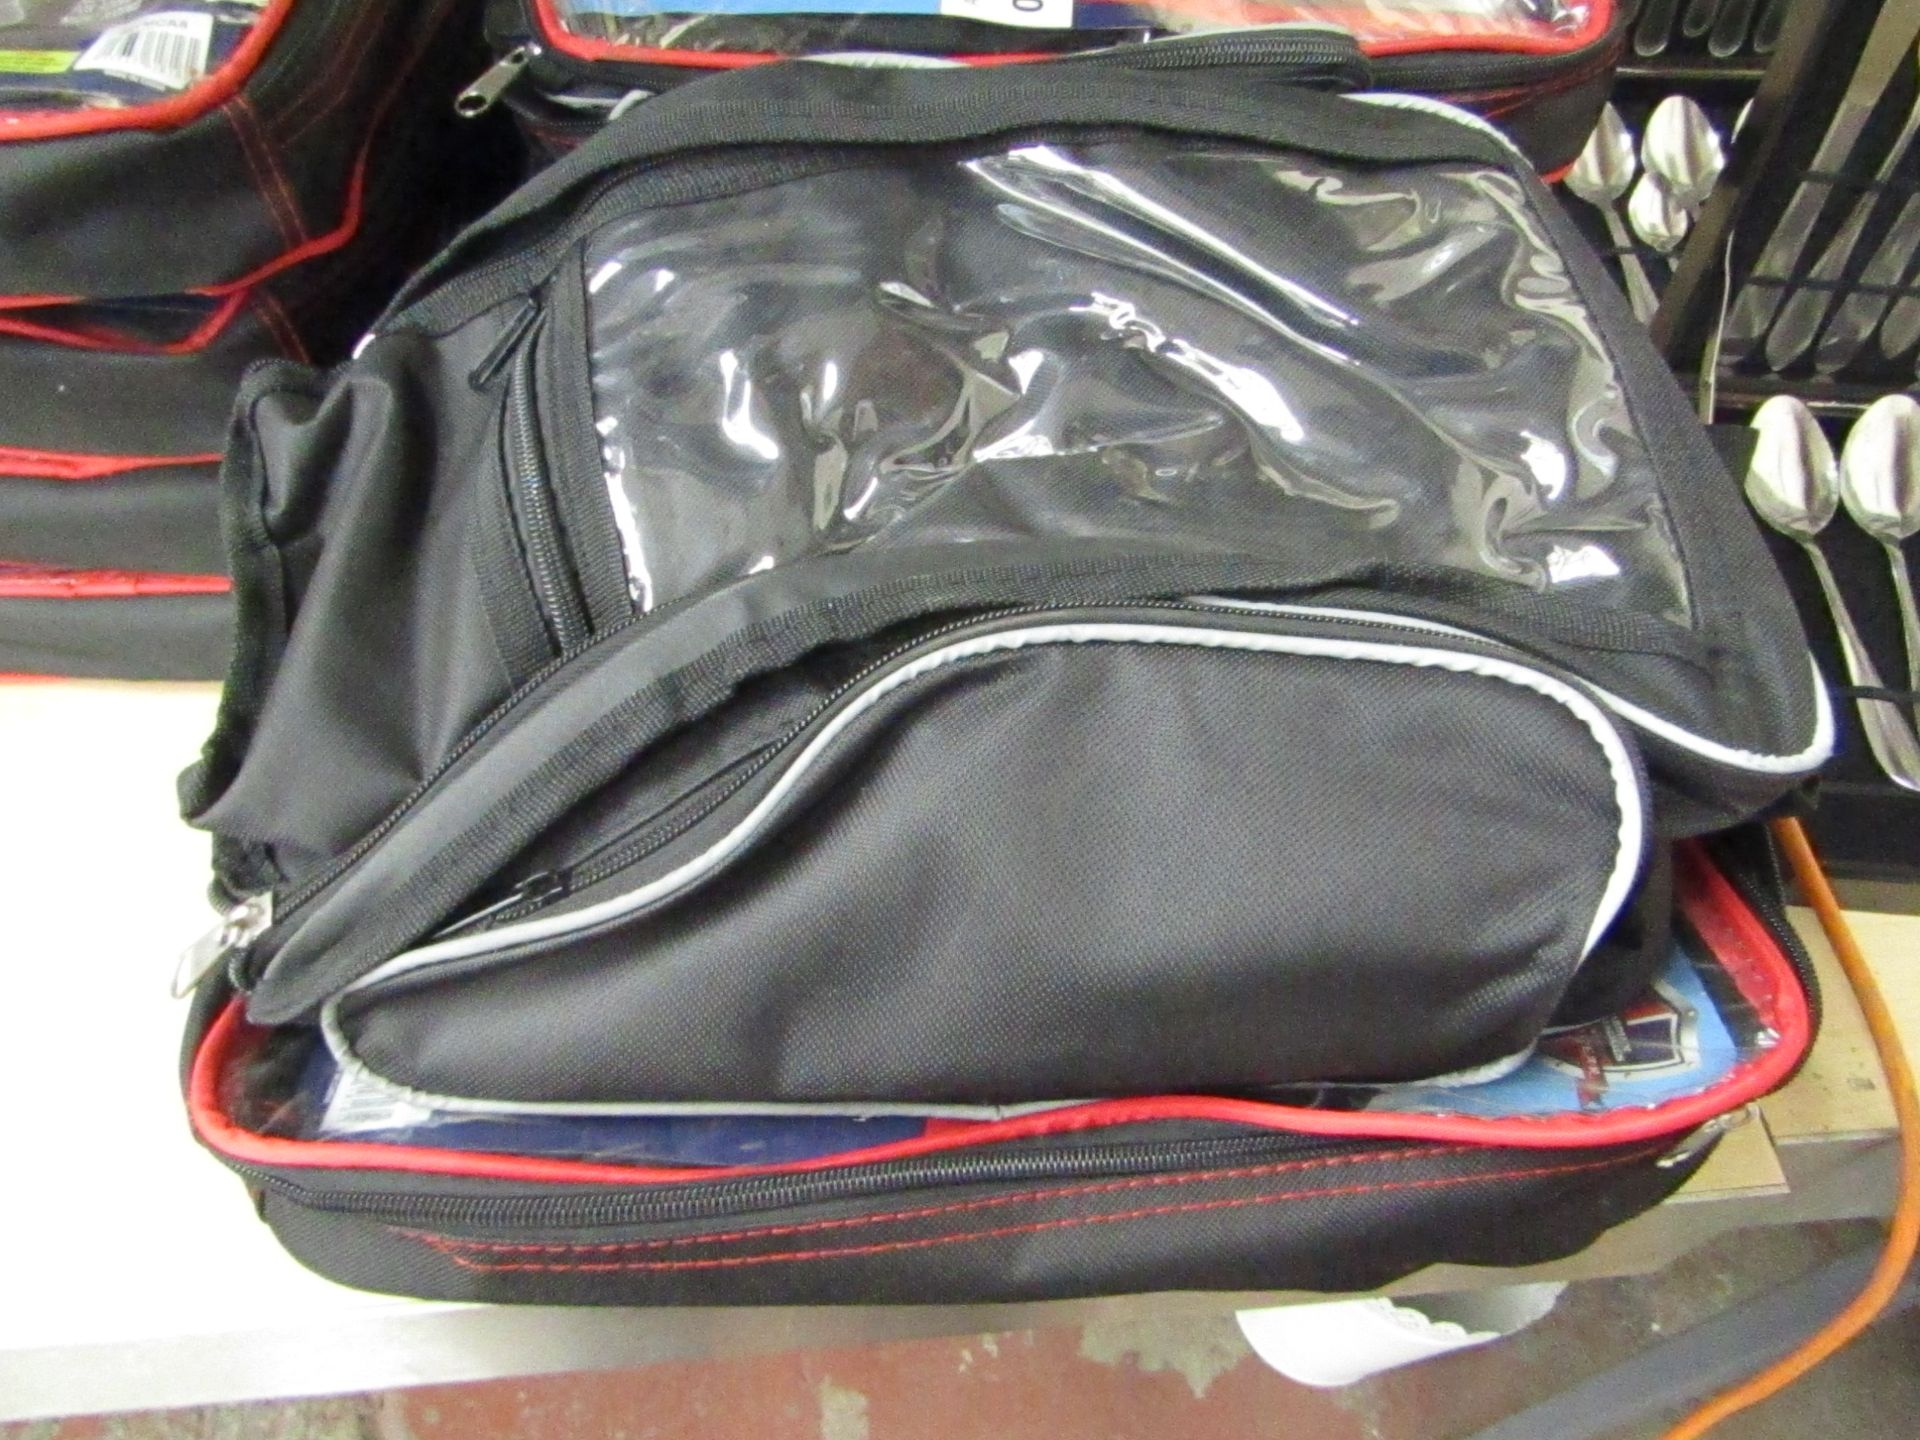 Lot 56 - Autotechnica Motorbike tank bag, with 600 Denier Polyester 40cm x 14cm x 21cm new and packaged